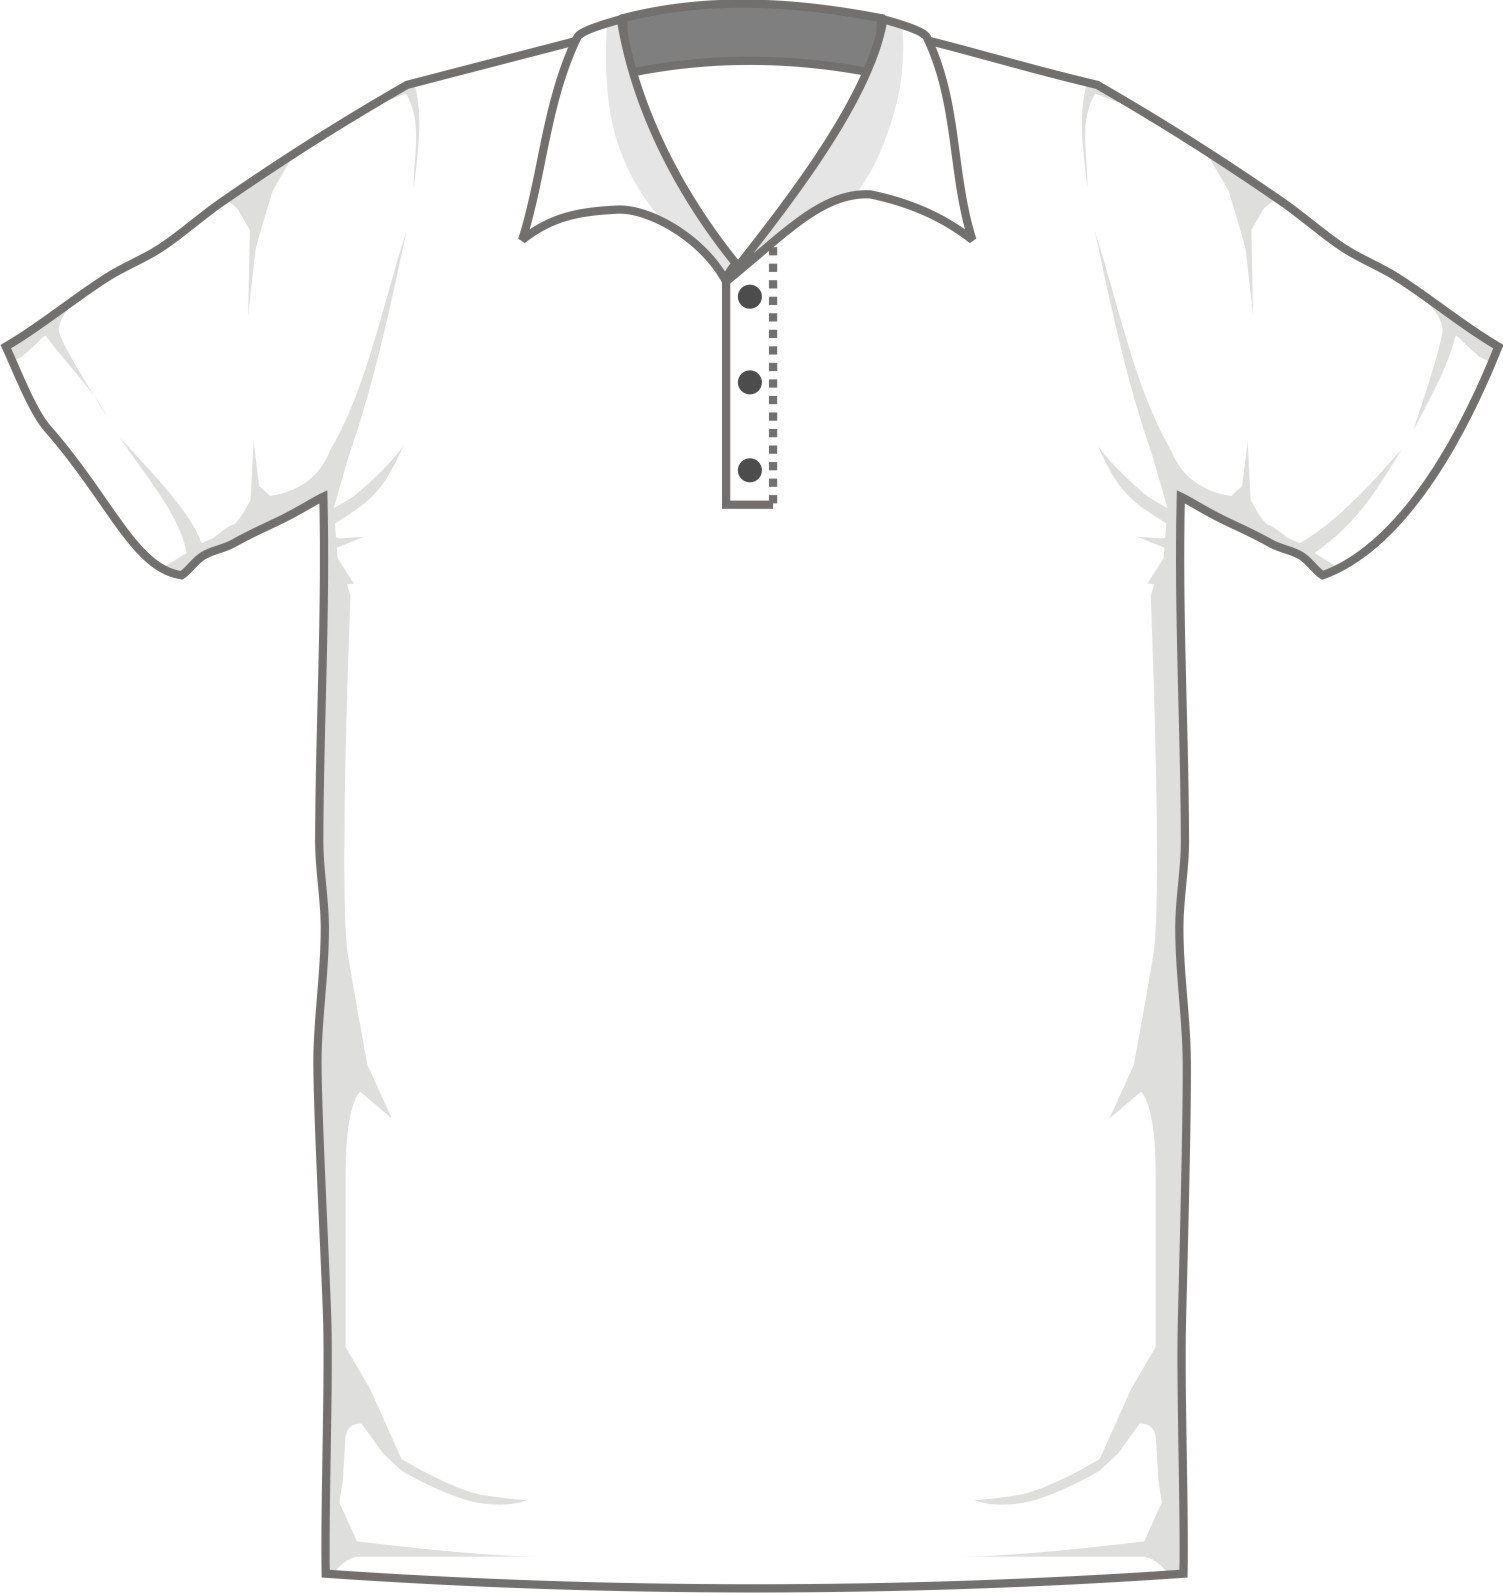 Blank Shirt Template With Collar Joy Studio Design